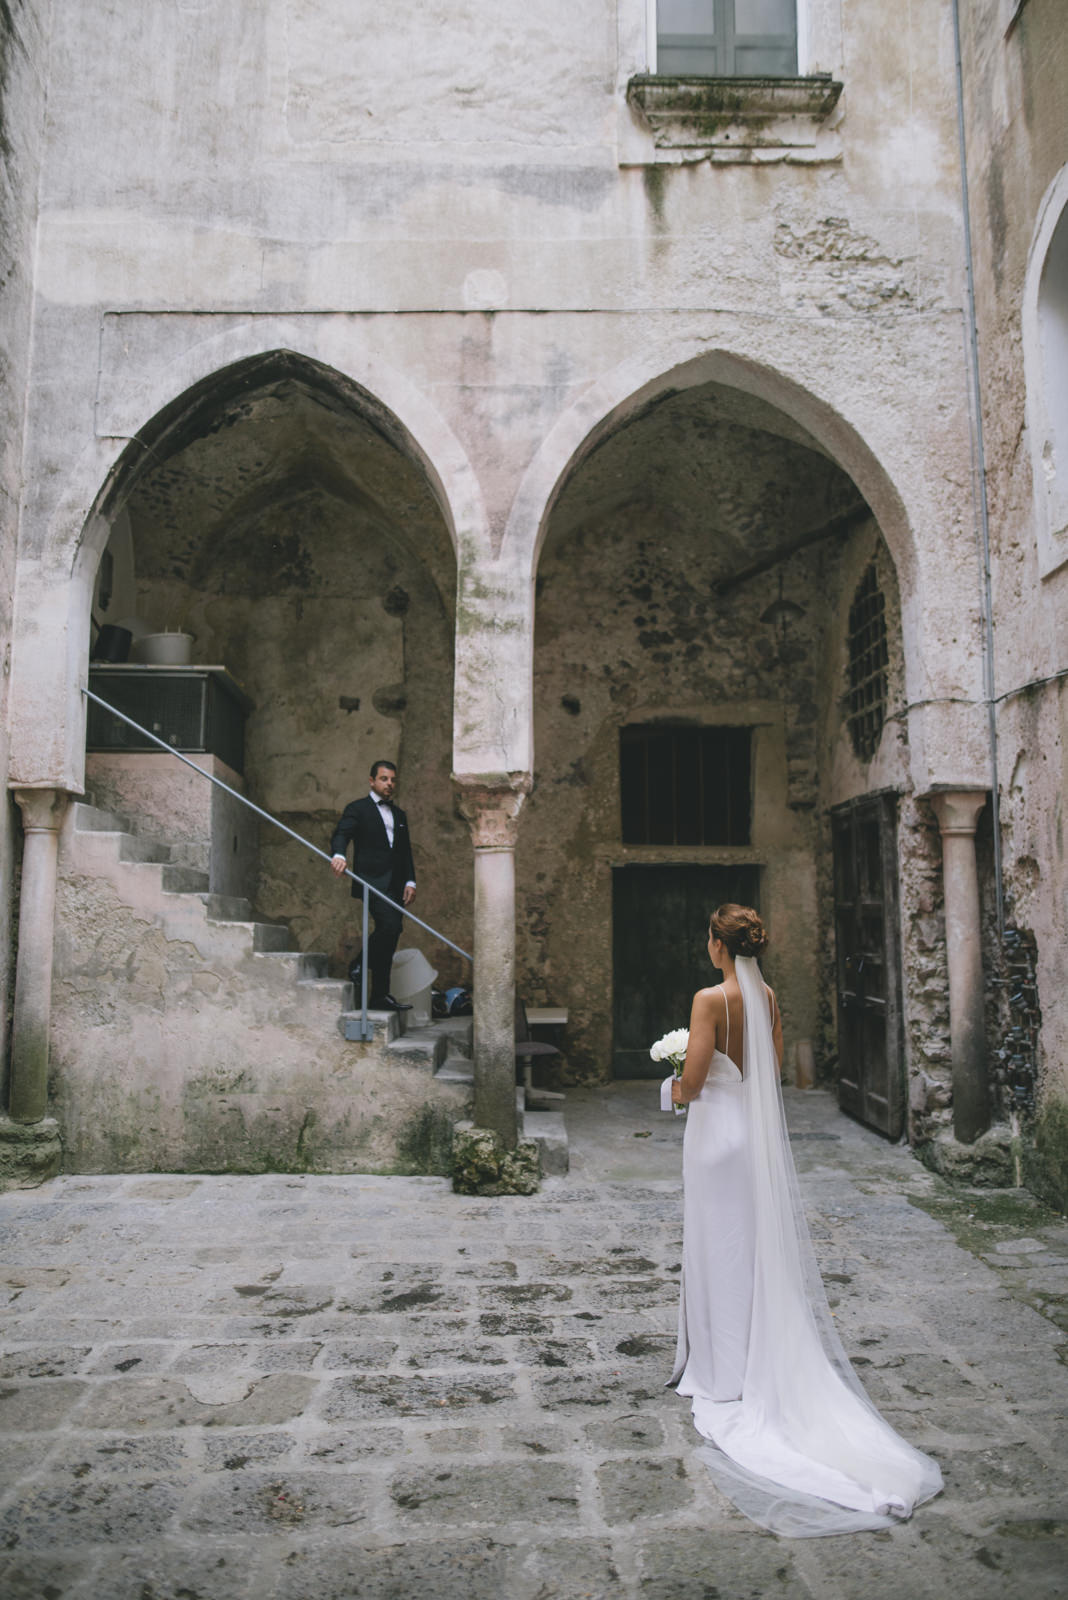 the bride and the groom standing in a typical old Italian courtyard